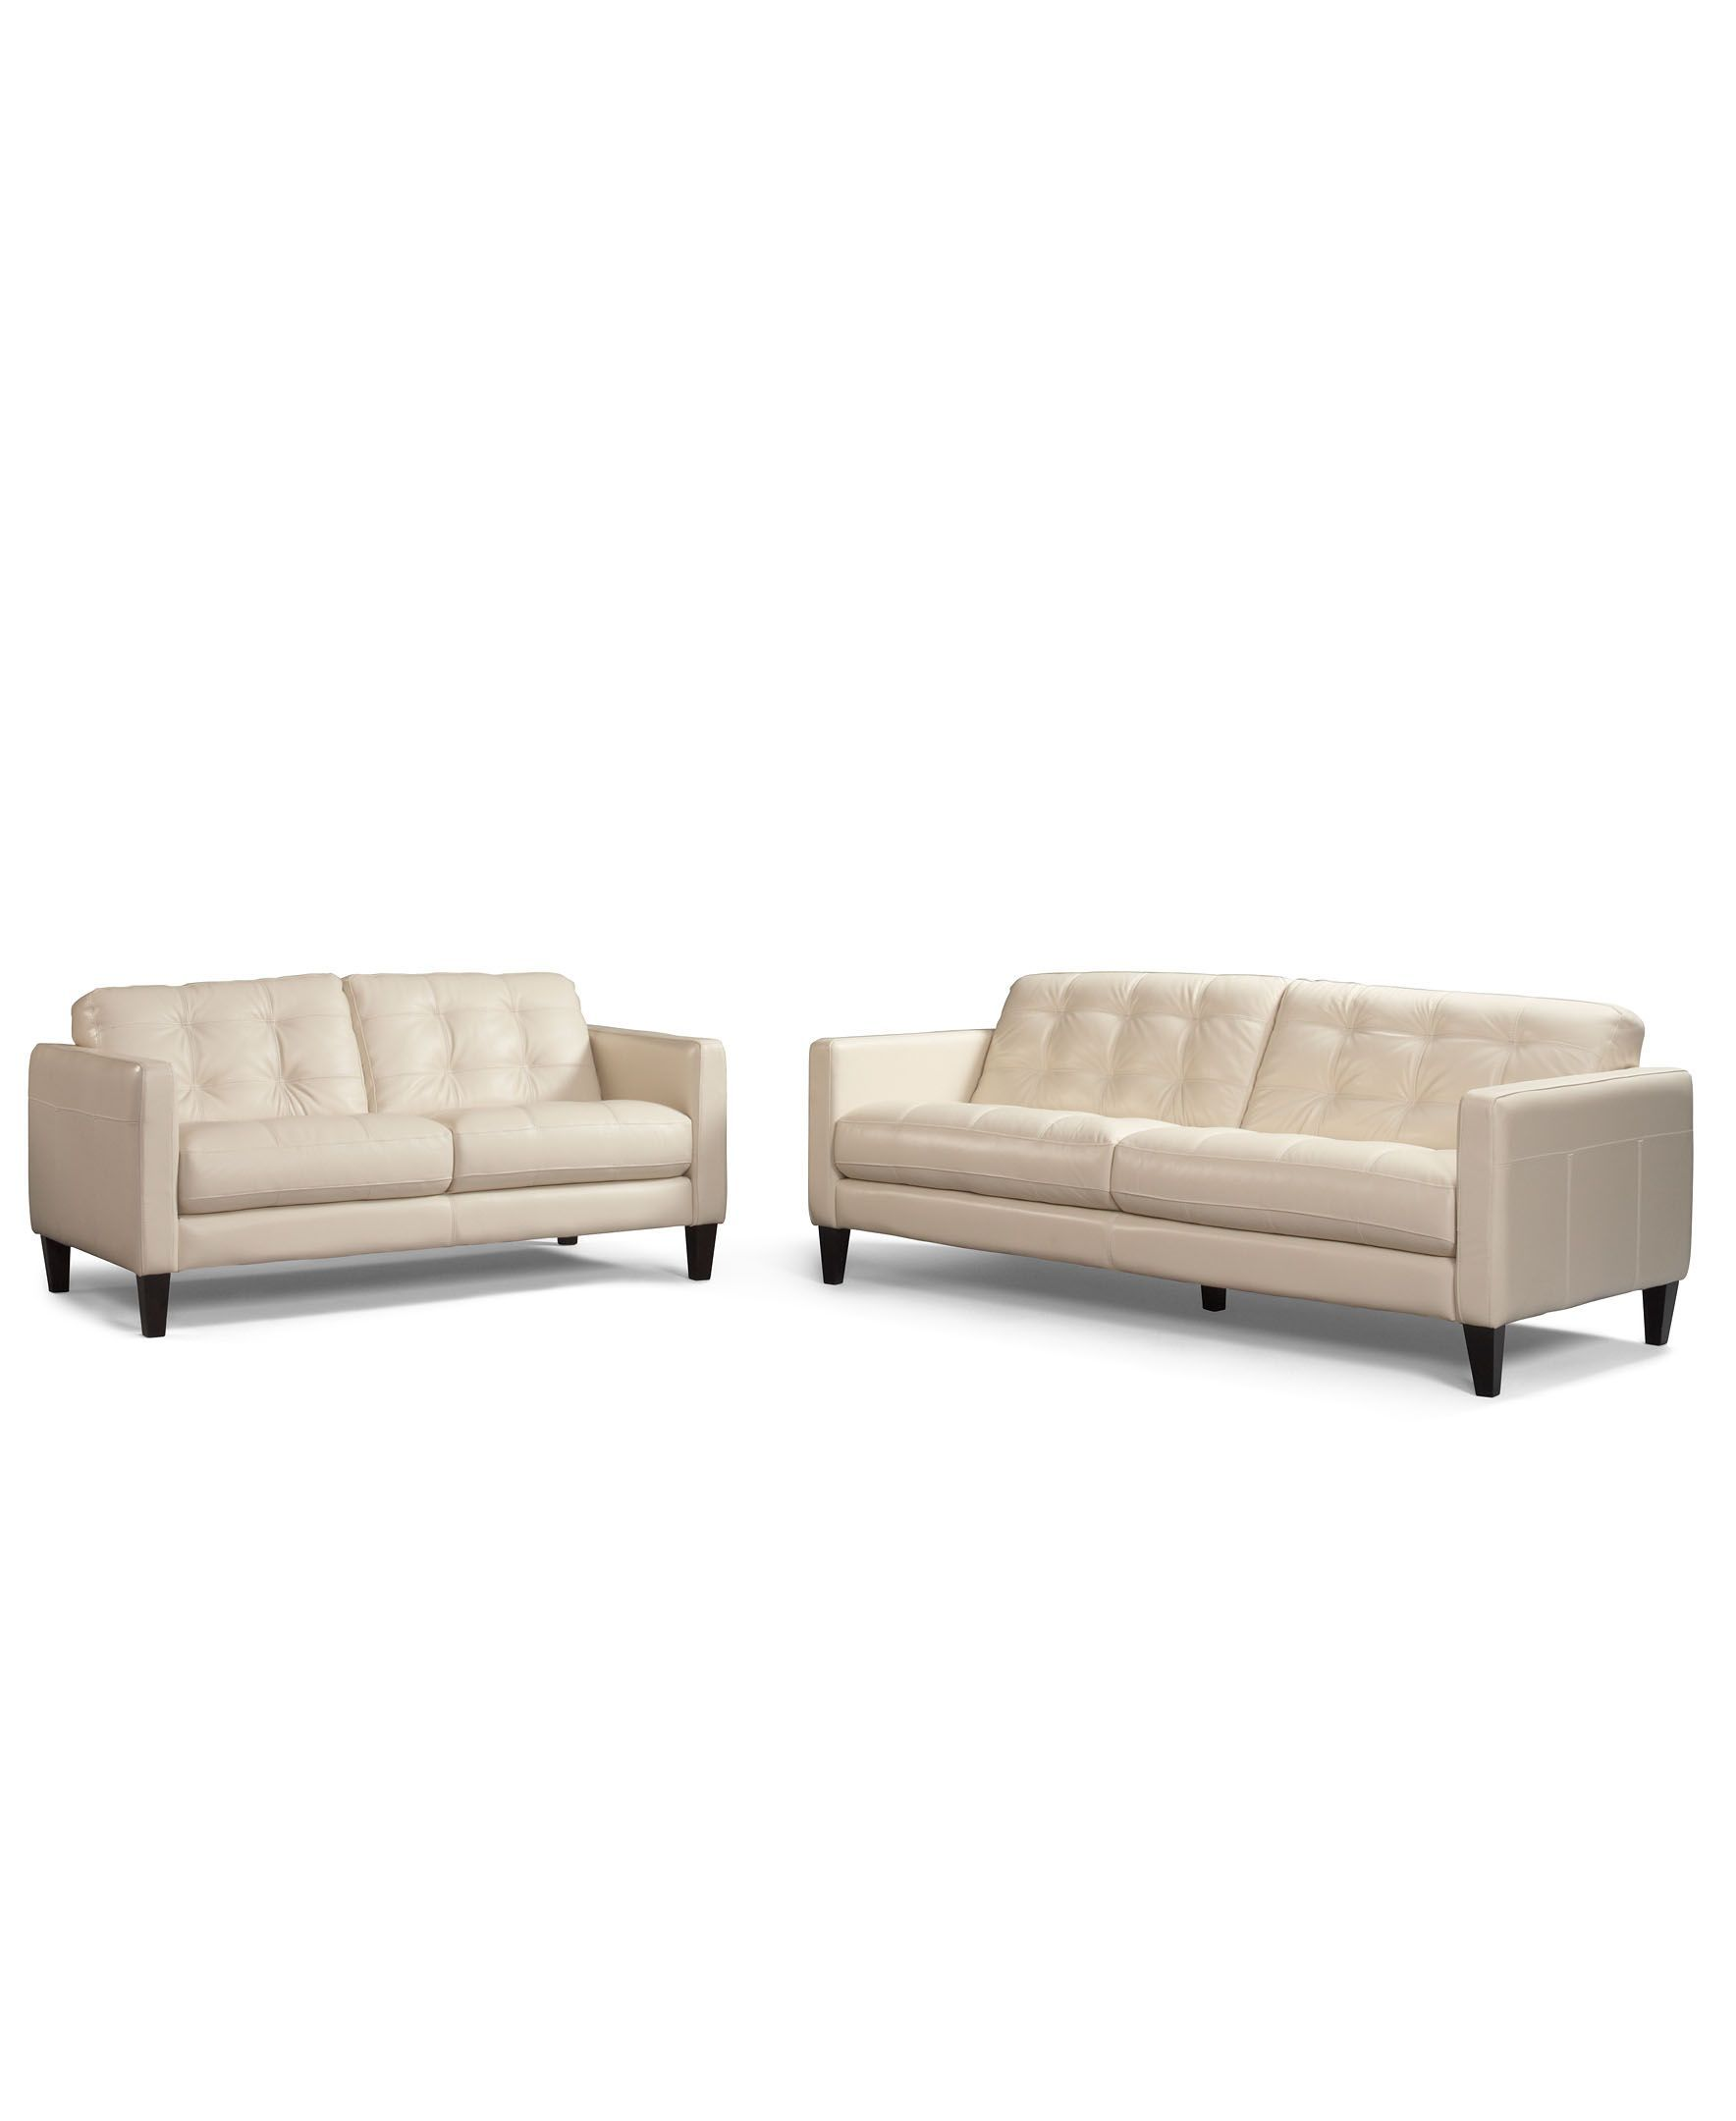 Groovy Milan 2 Piece Leather Sofa Set Sofa And Love Seat Download Free Architecture Designs Scobabritishbridgeorg